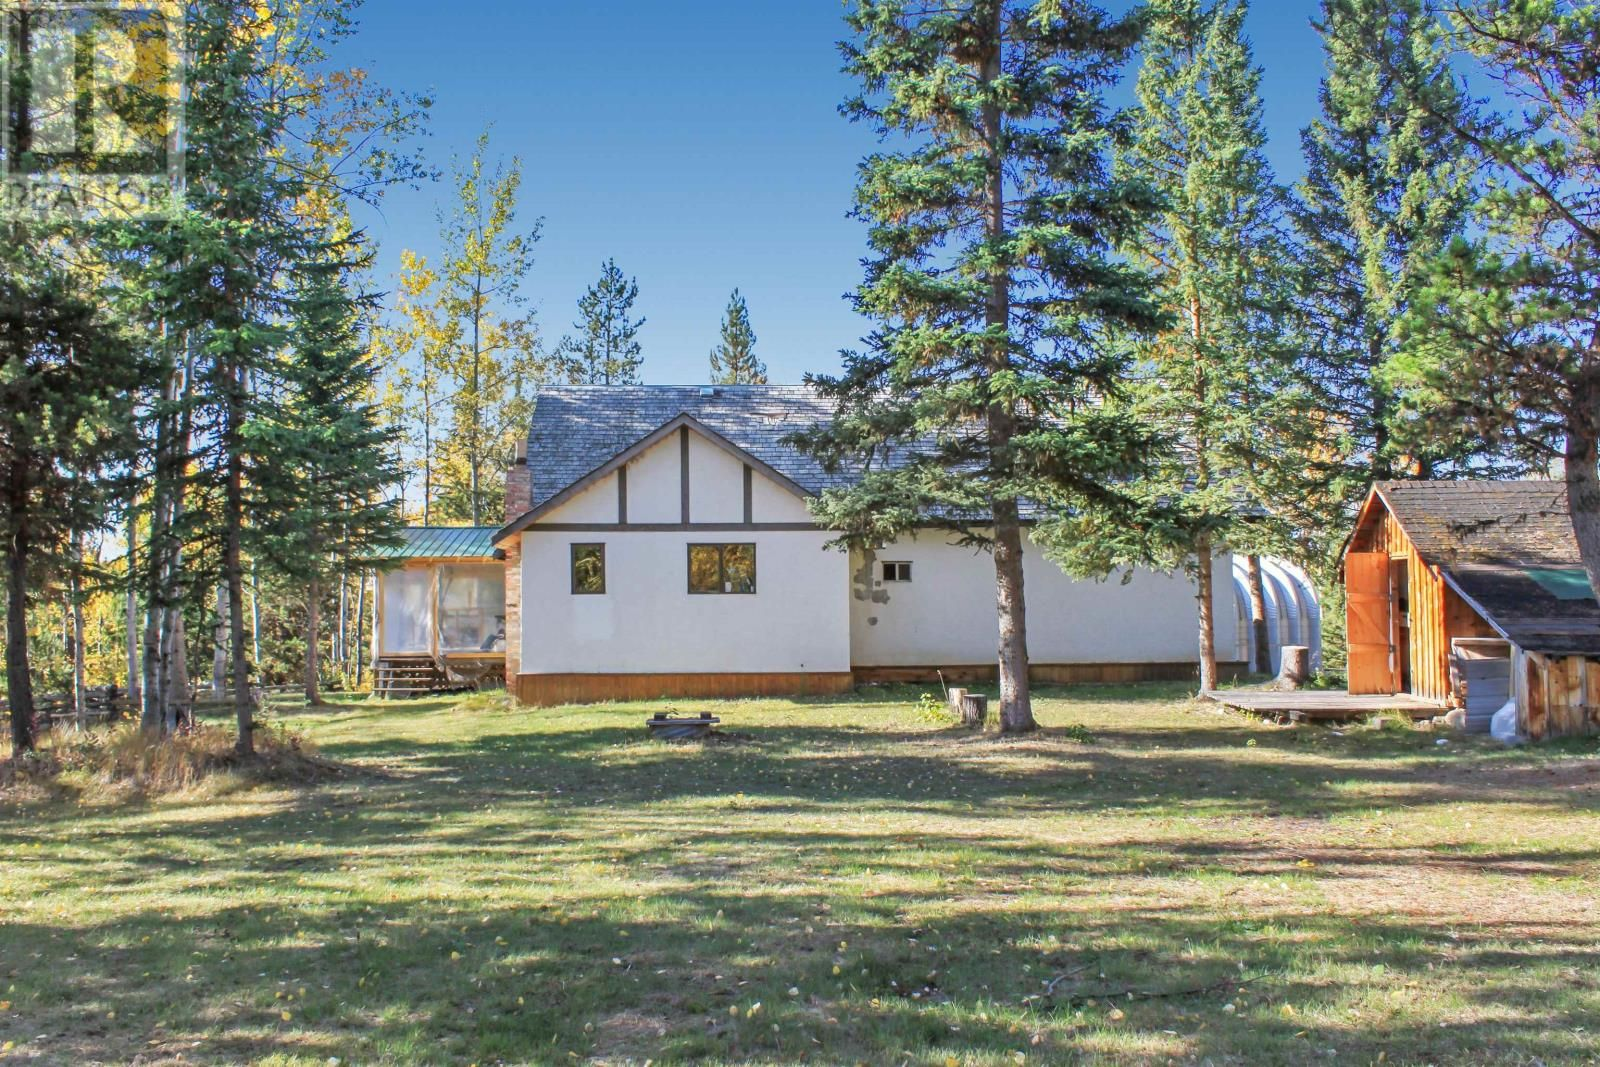 Main Photo: 6896 FAWN LAKE ROAD in Lone Butte: House for sale : MLS®# R2622820